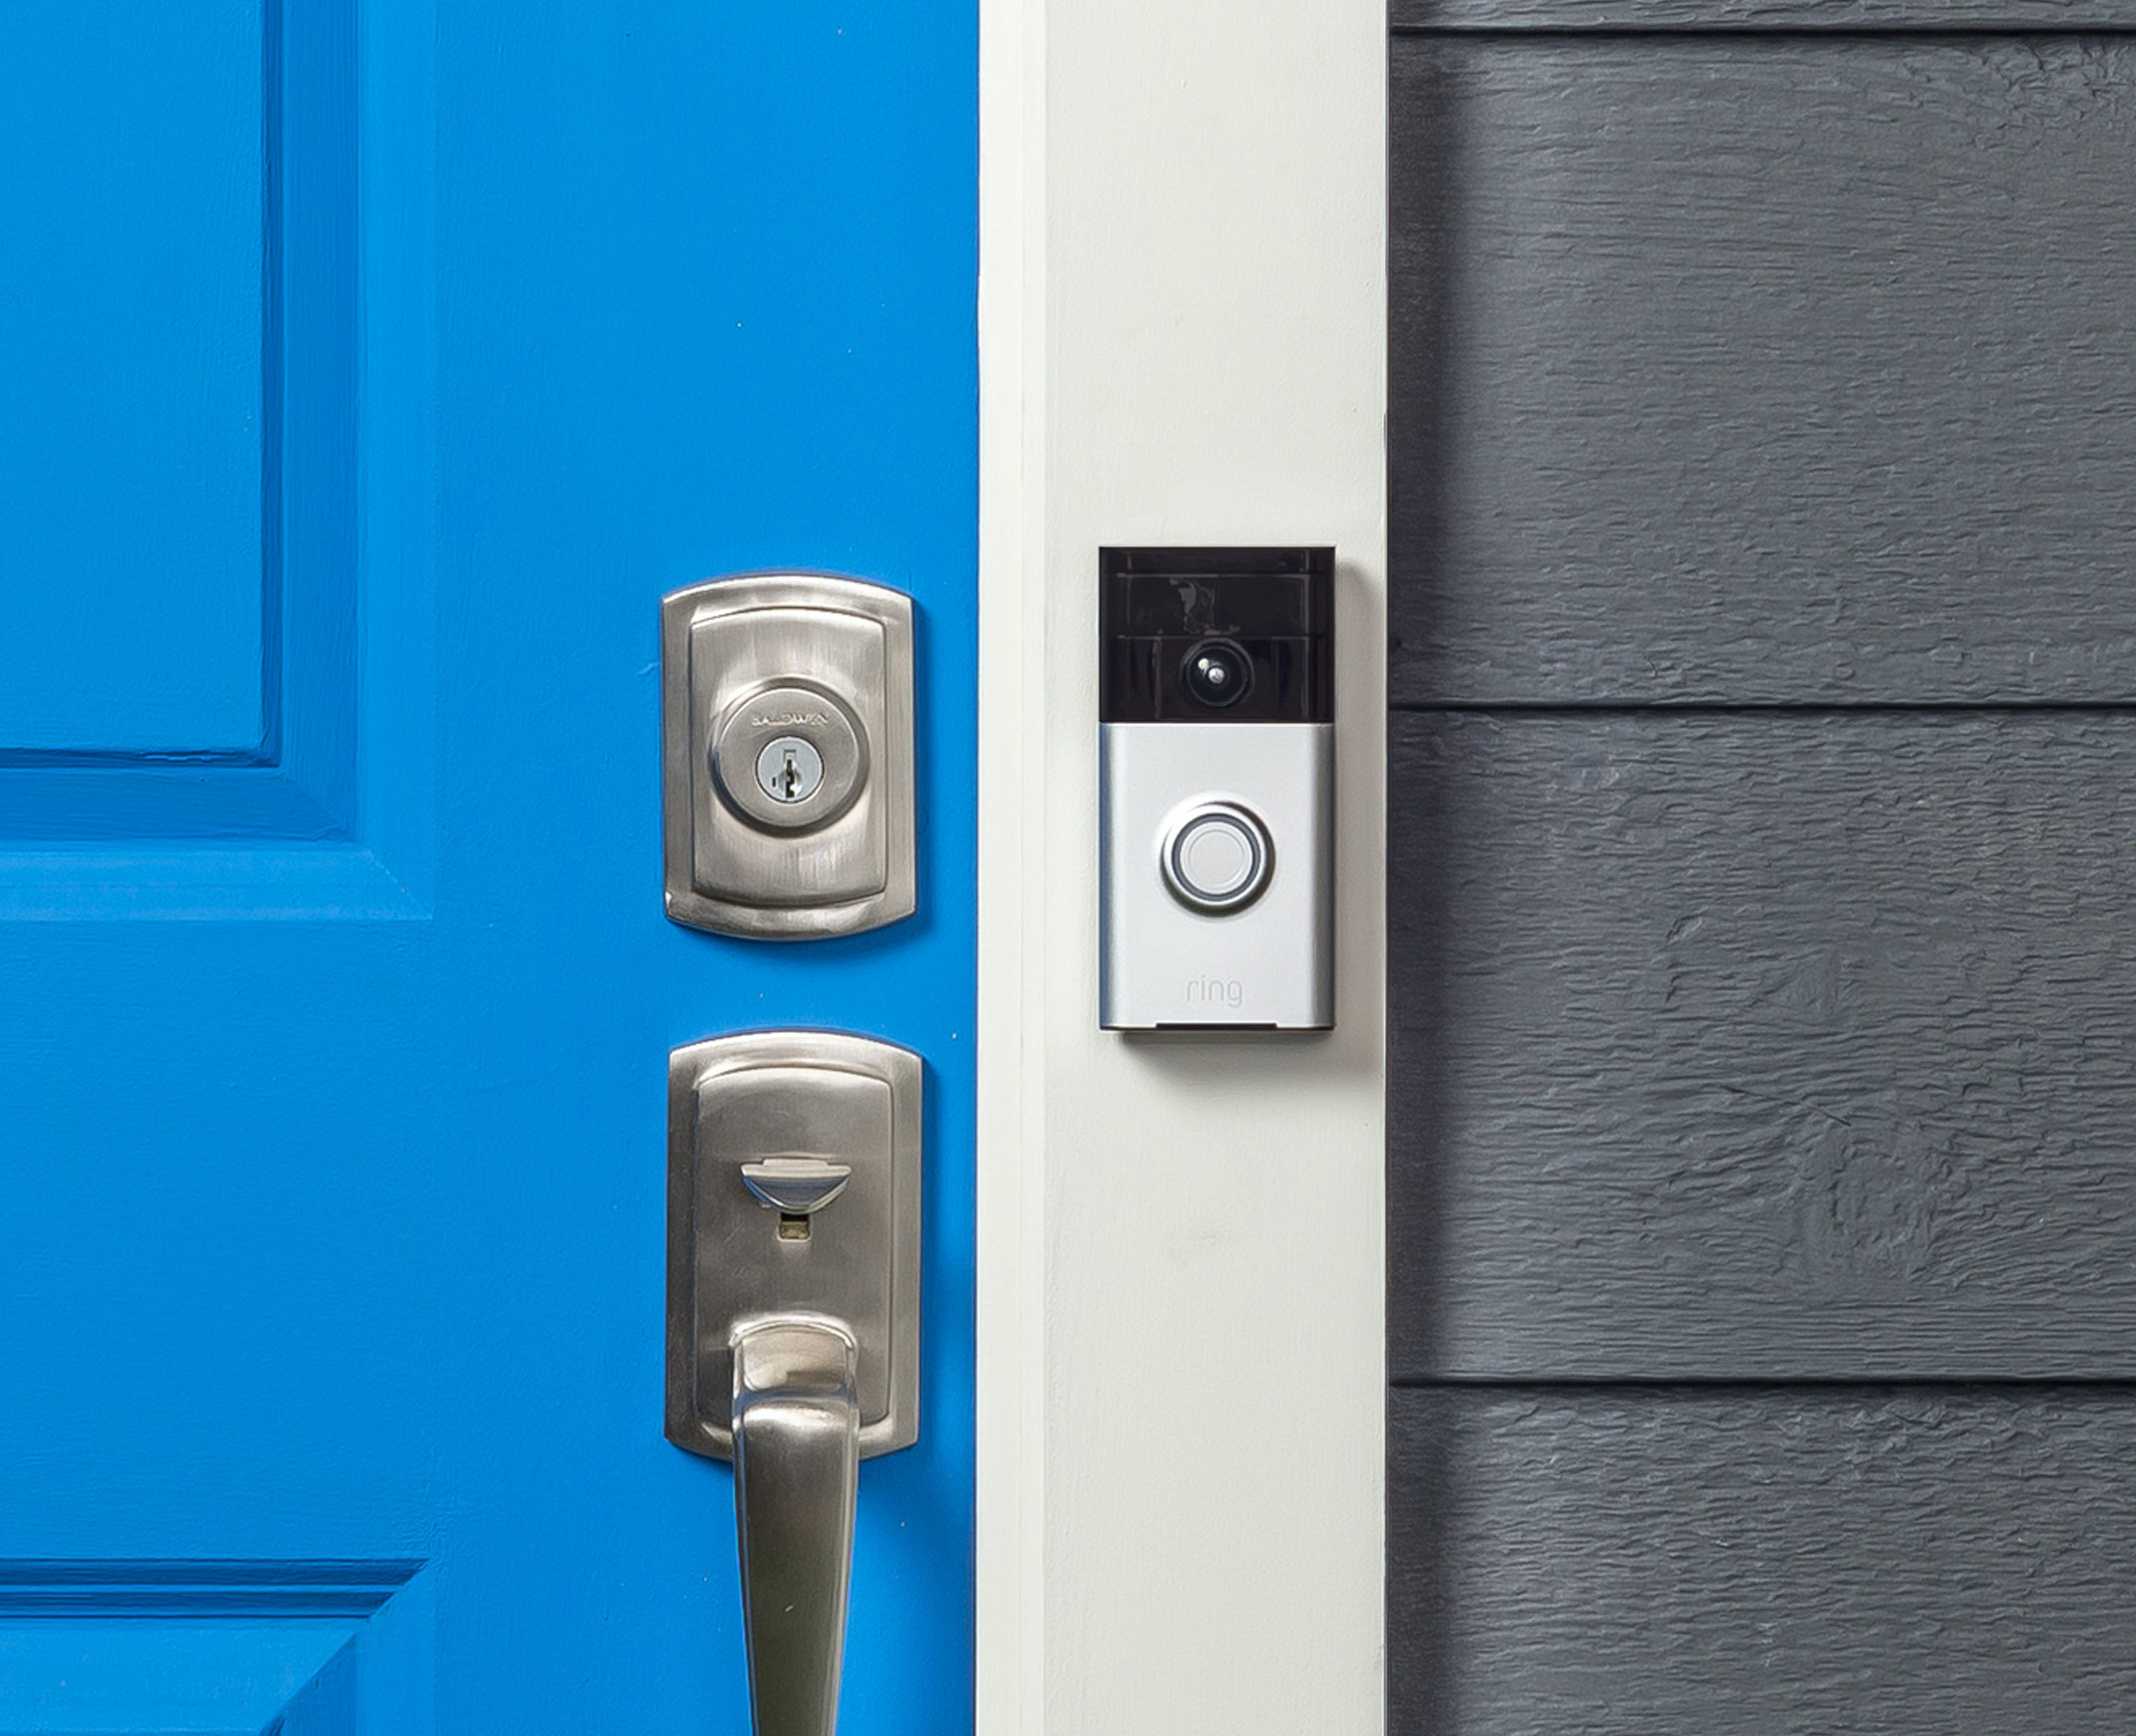 Ring Video Doorbell 2 sweepstakes